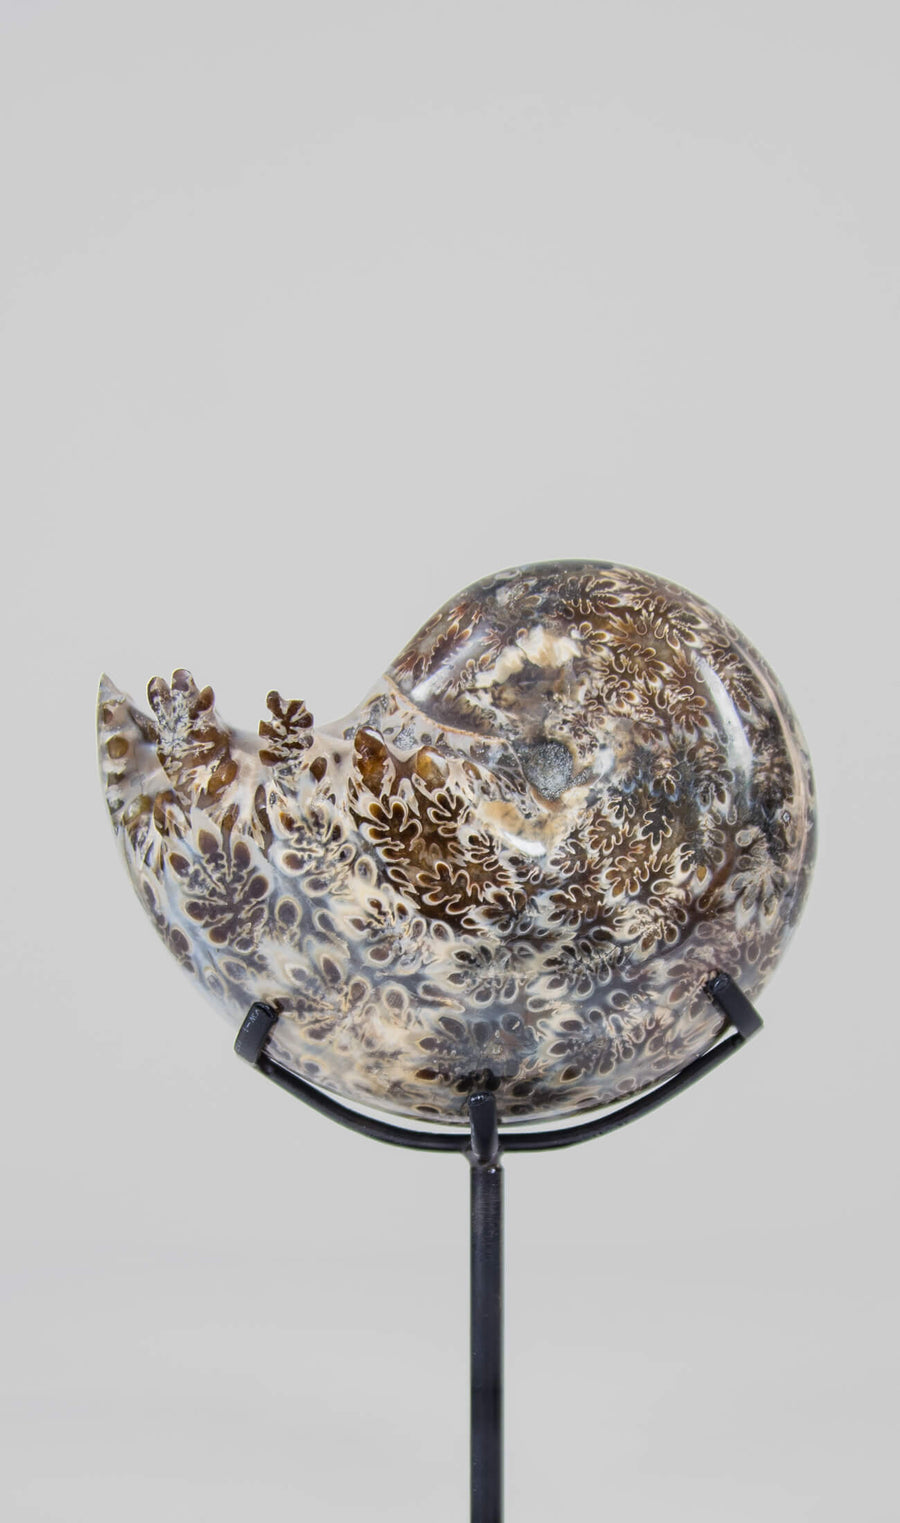 A beautifully polished Phylloceras ammonite fossil for sale measuring 124mm on THE FOSSIL STORE custom designed bronze stand